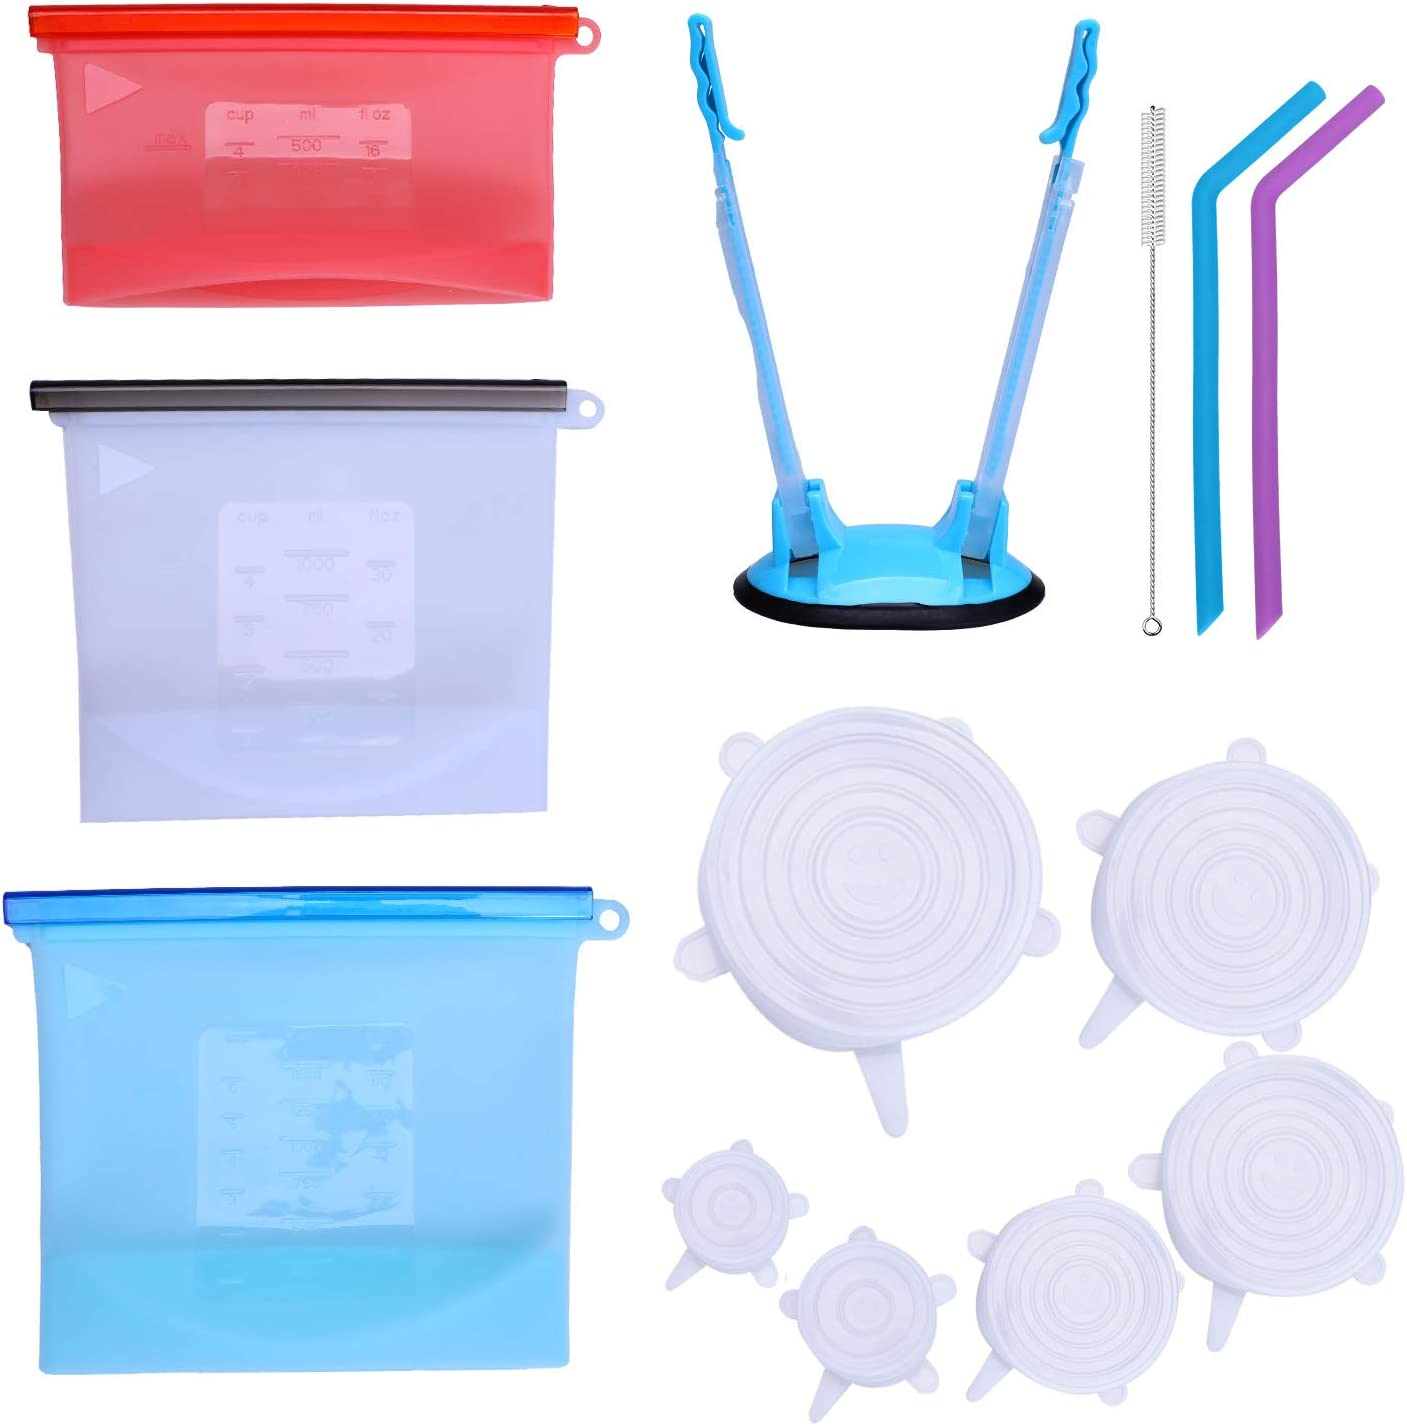 LEASEN Silicone Bags,Reusable Silicone Food Bags, Airtight Food Preservation Bags/Preservation Lids/Food Grade/Multi-Functional Silicone Bags for Liquids, Meat, Snacks, Sandwiches, Vegetables.